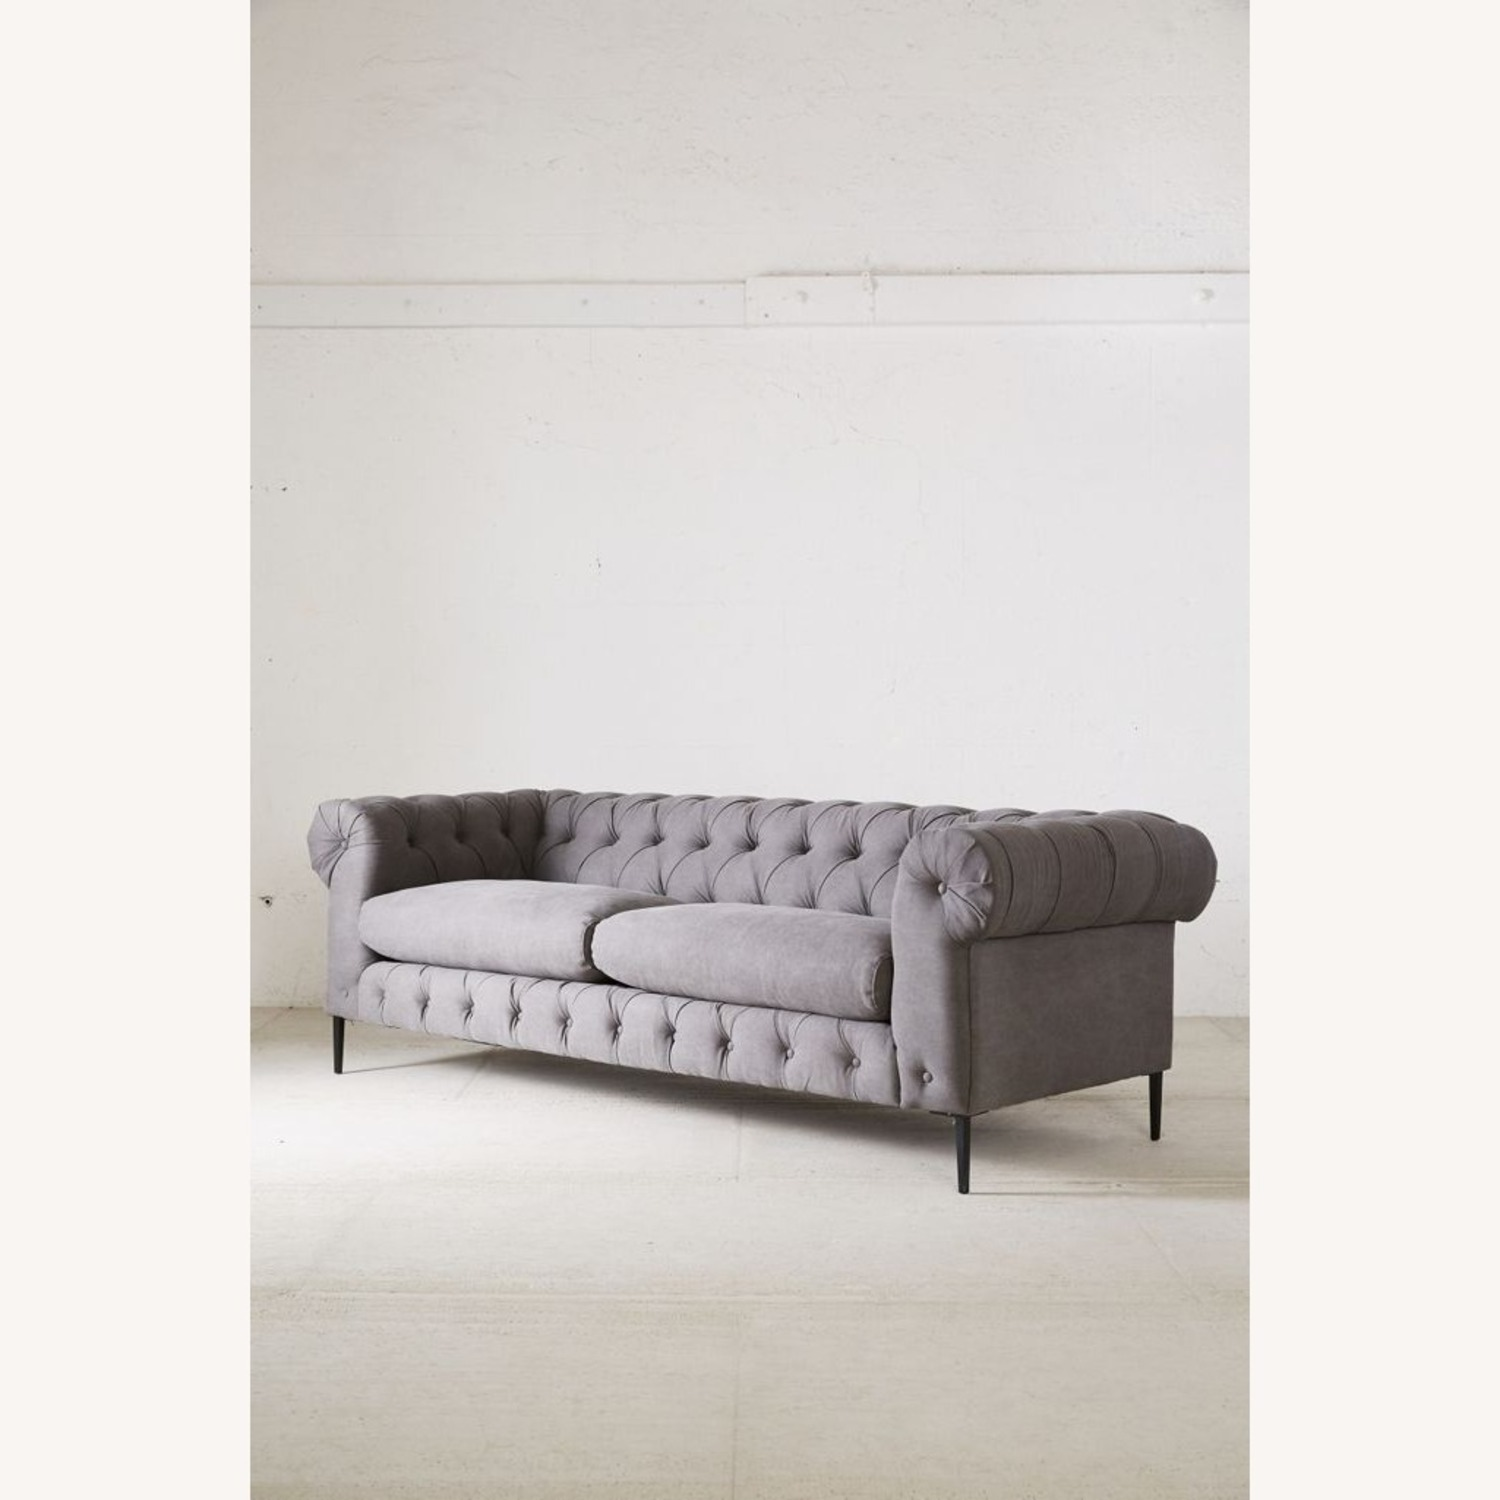 Anthropologie Canal Tufted Sofa - image-2